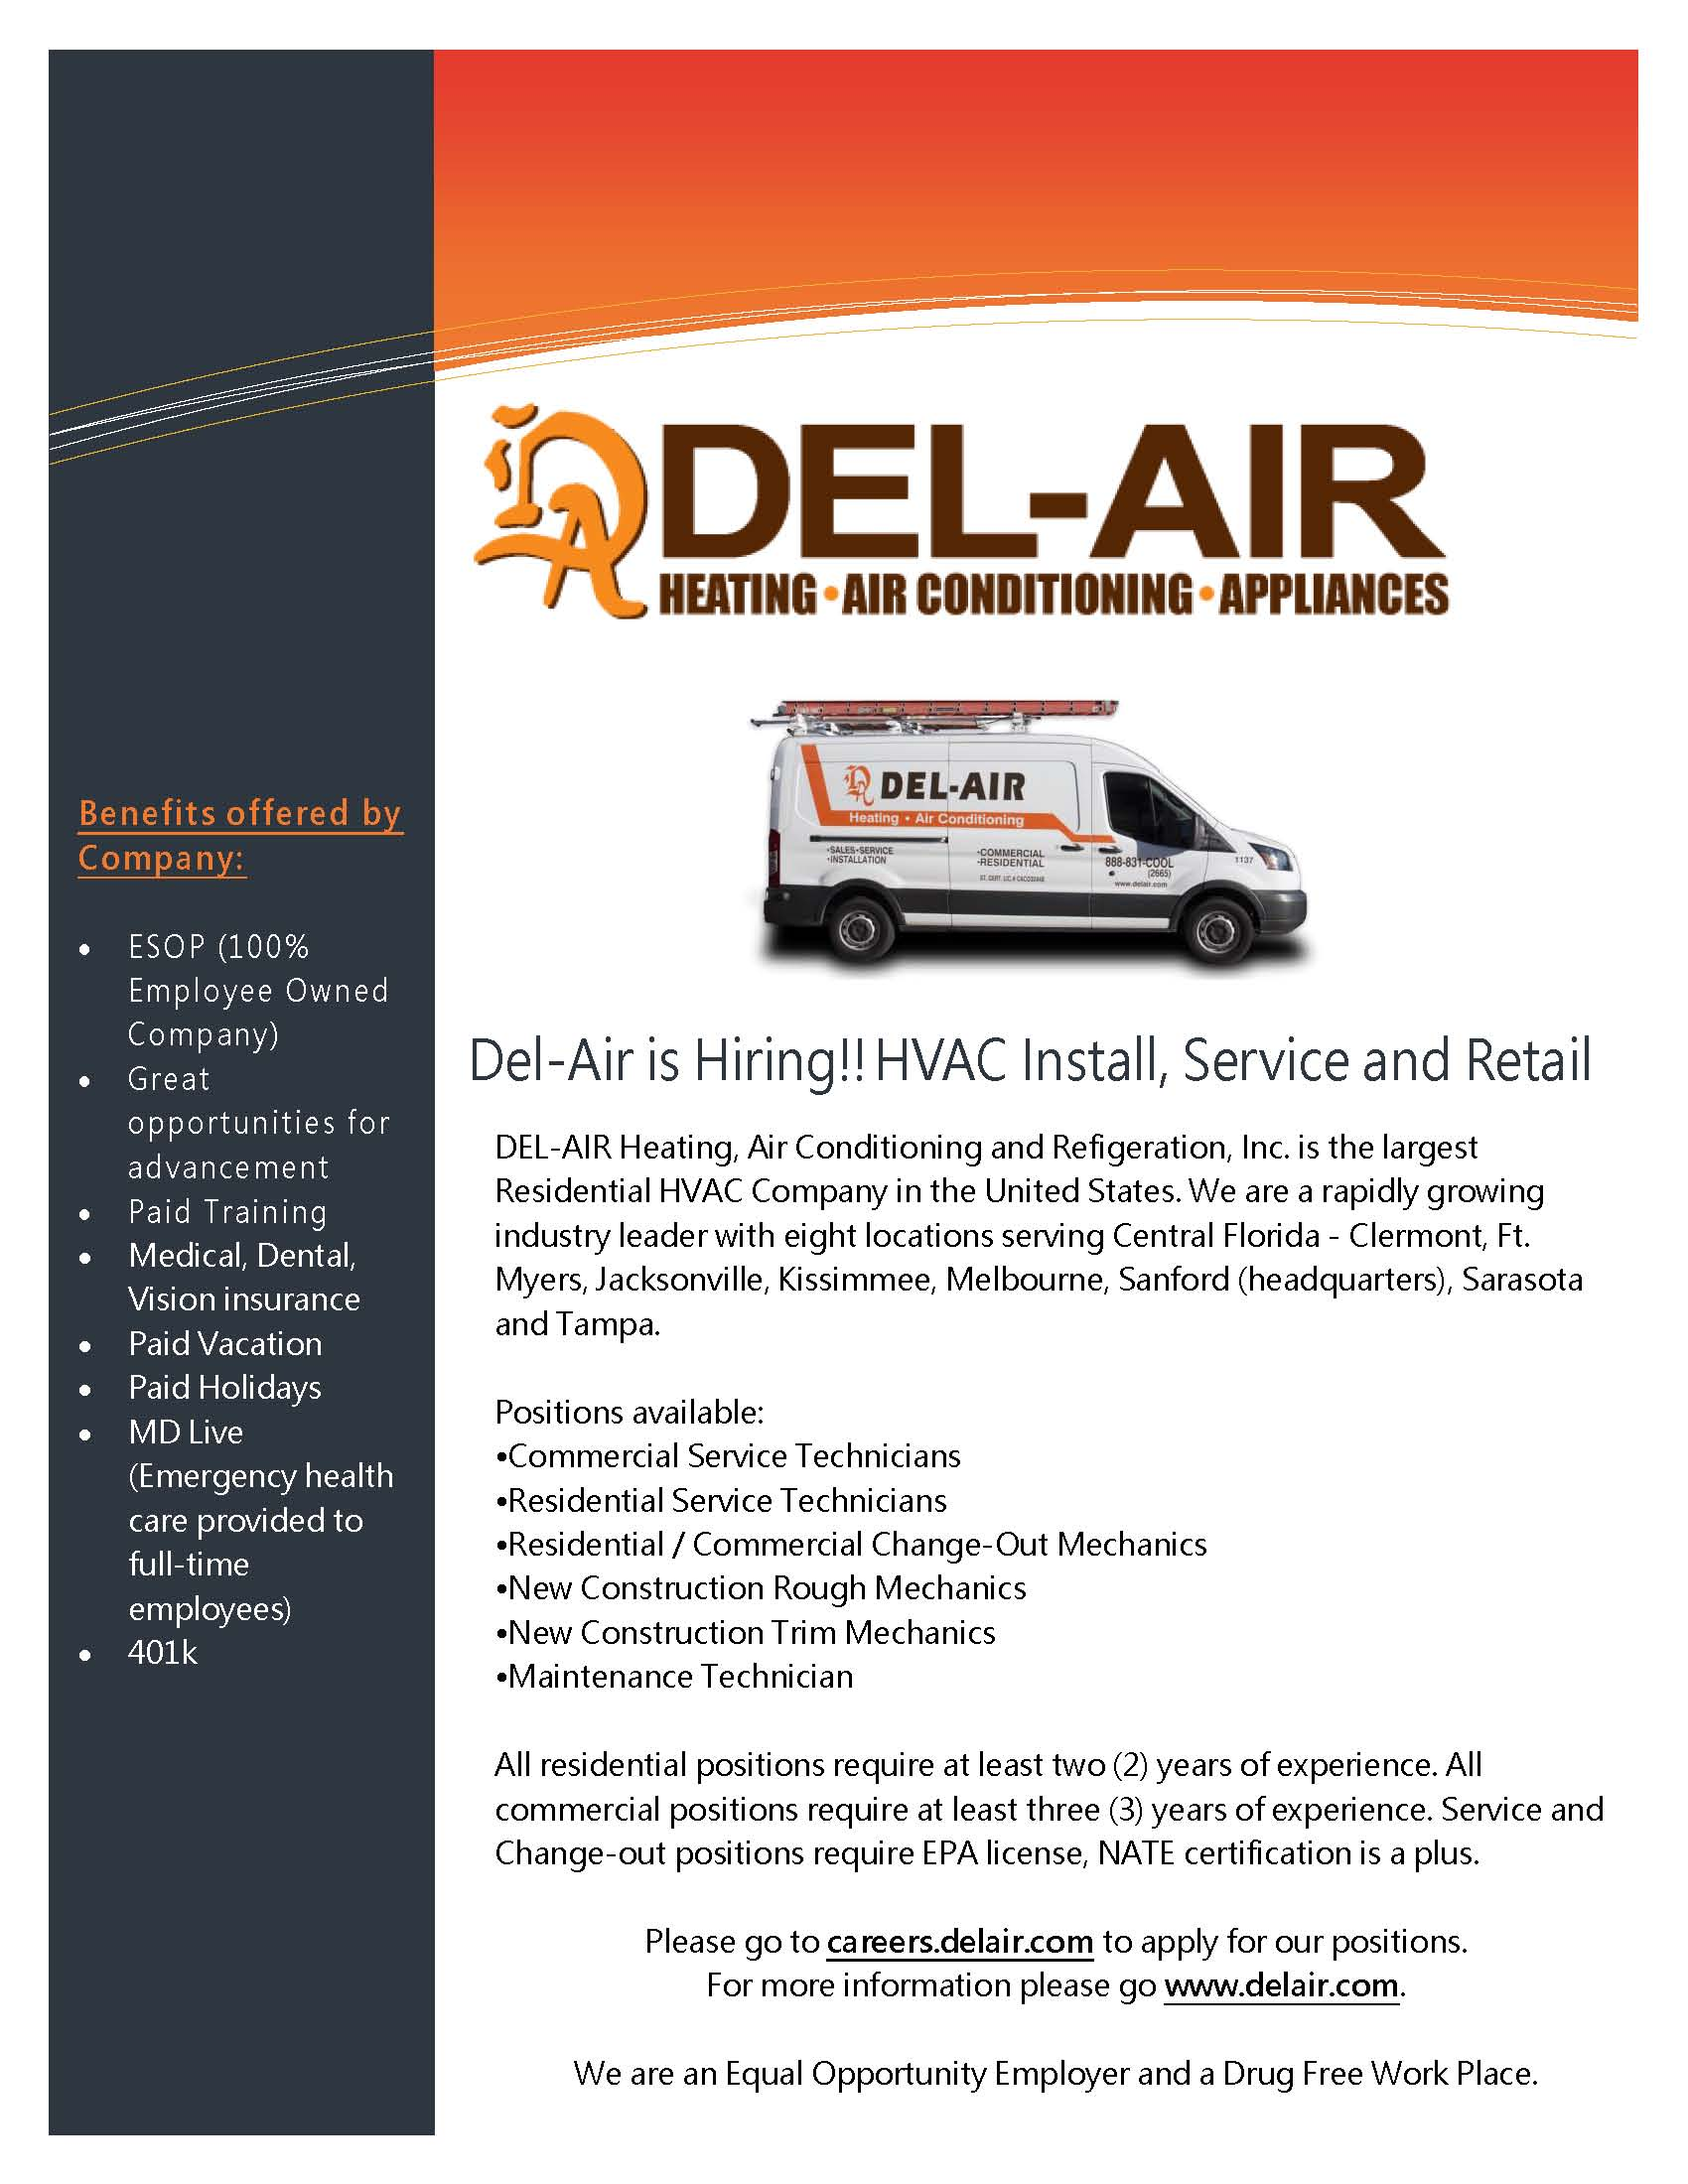 Del-Air is Hiring HVAC Install, Service, & Retail